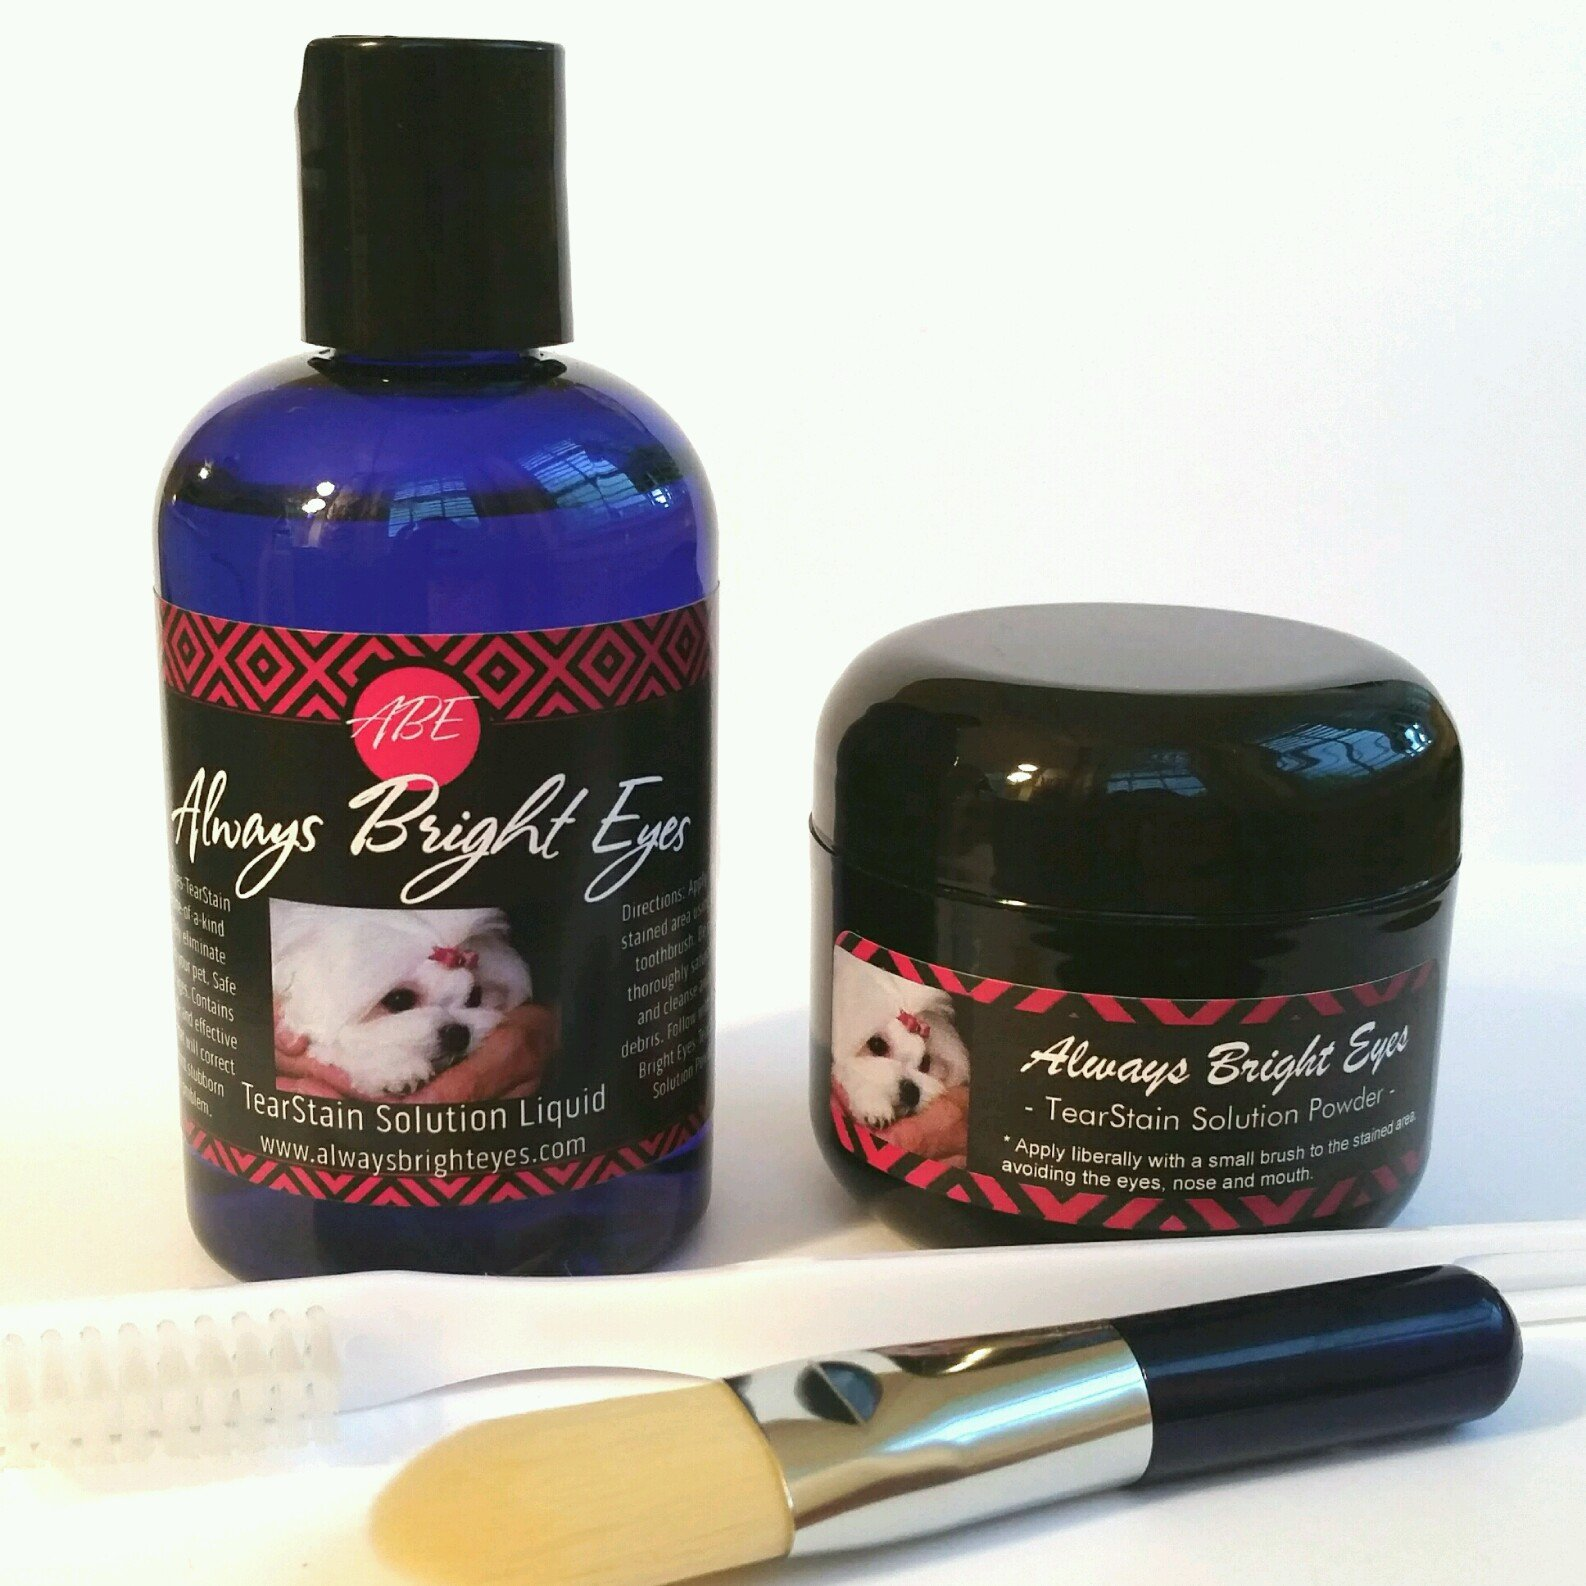 Always Bright Eyes -Tear Stain Remover for Dogs And Cats- Complete Set Includes 2 oz. Powder, 4 oz.Liquid And Application Brushes -All Natural- For Maltese, Shitzu, Yorkies, and Light Coated Breeds. by Always Bright Eyes